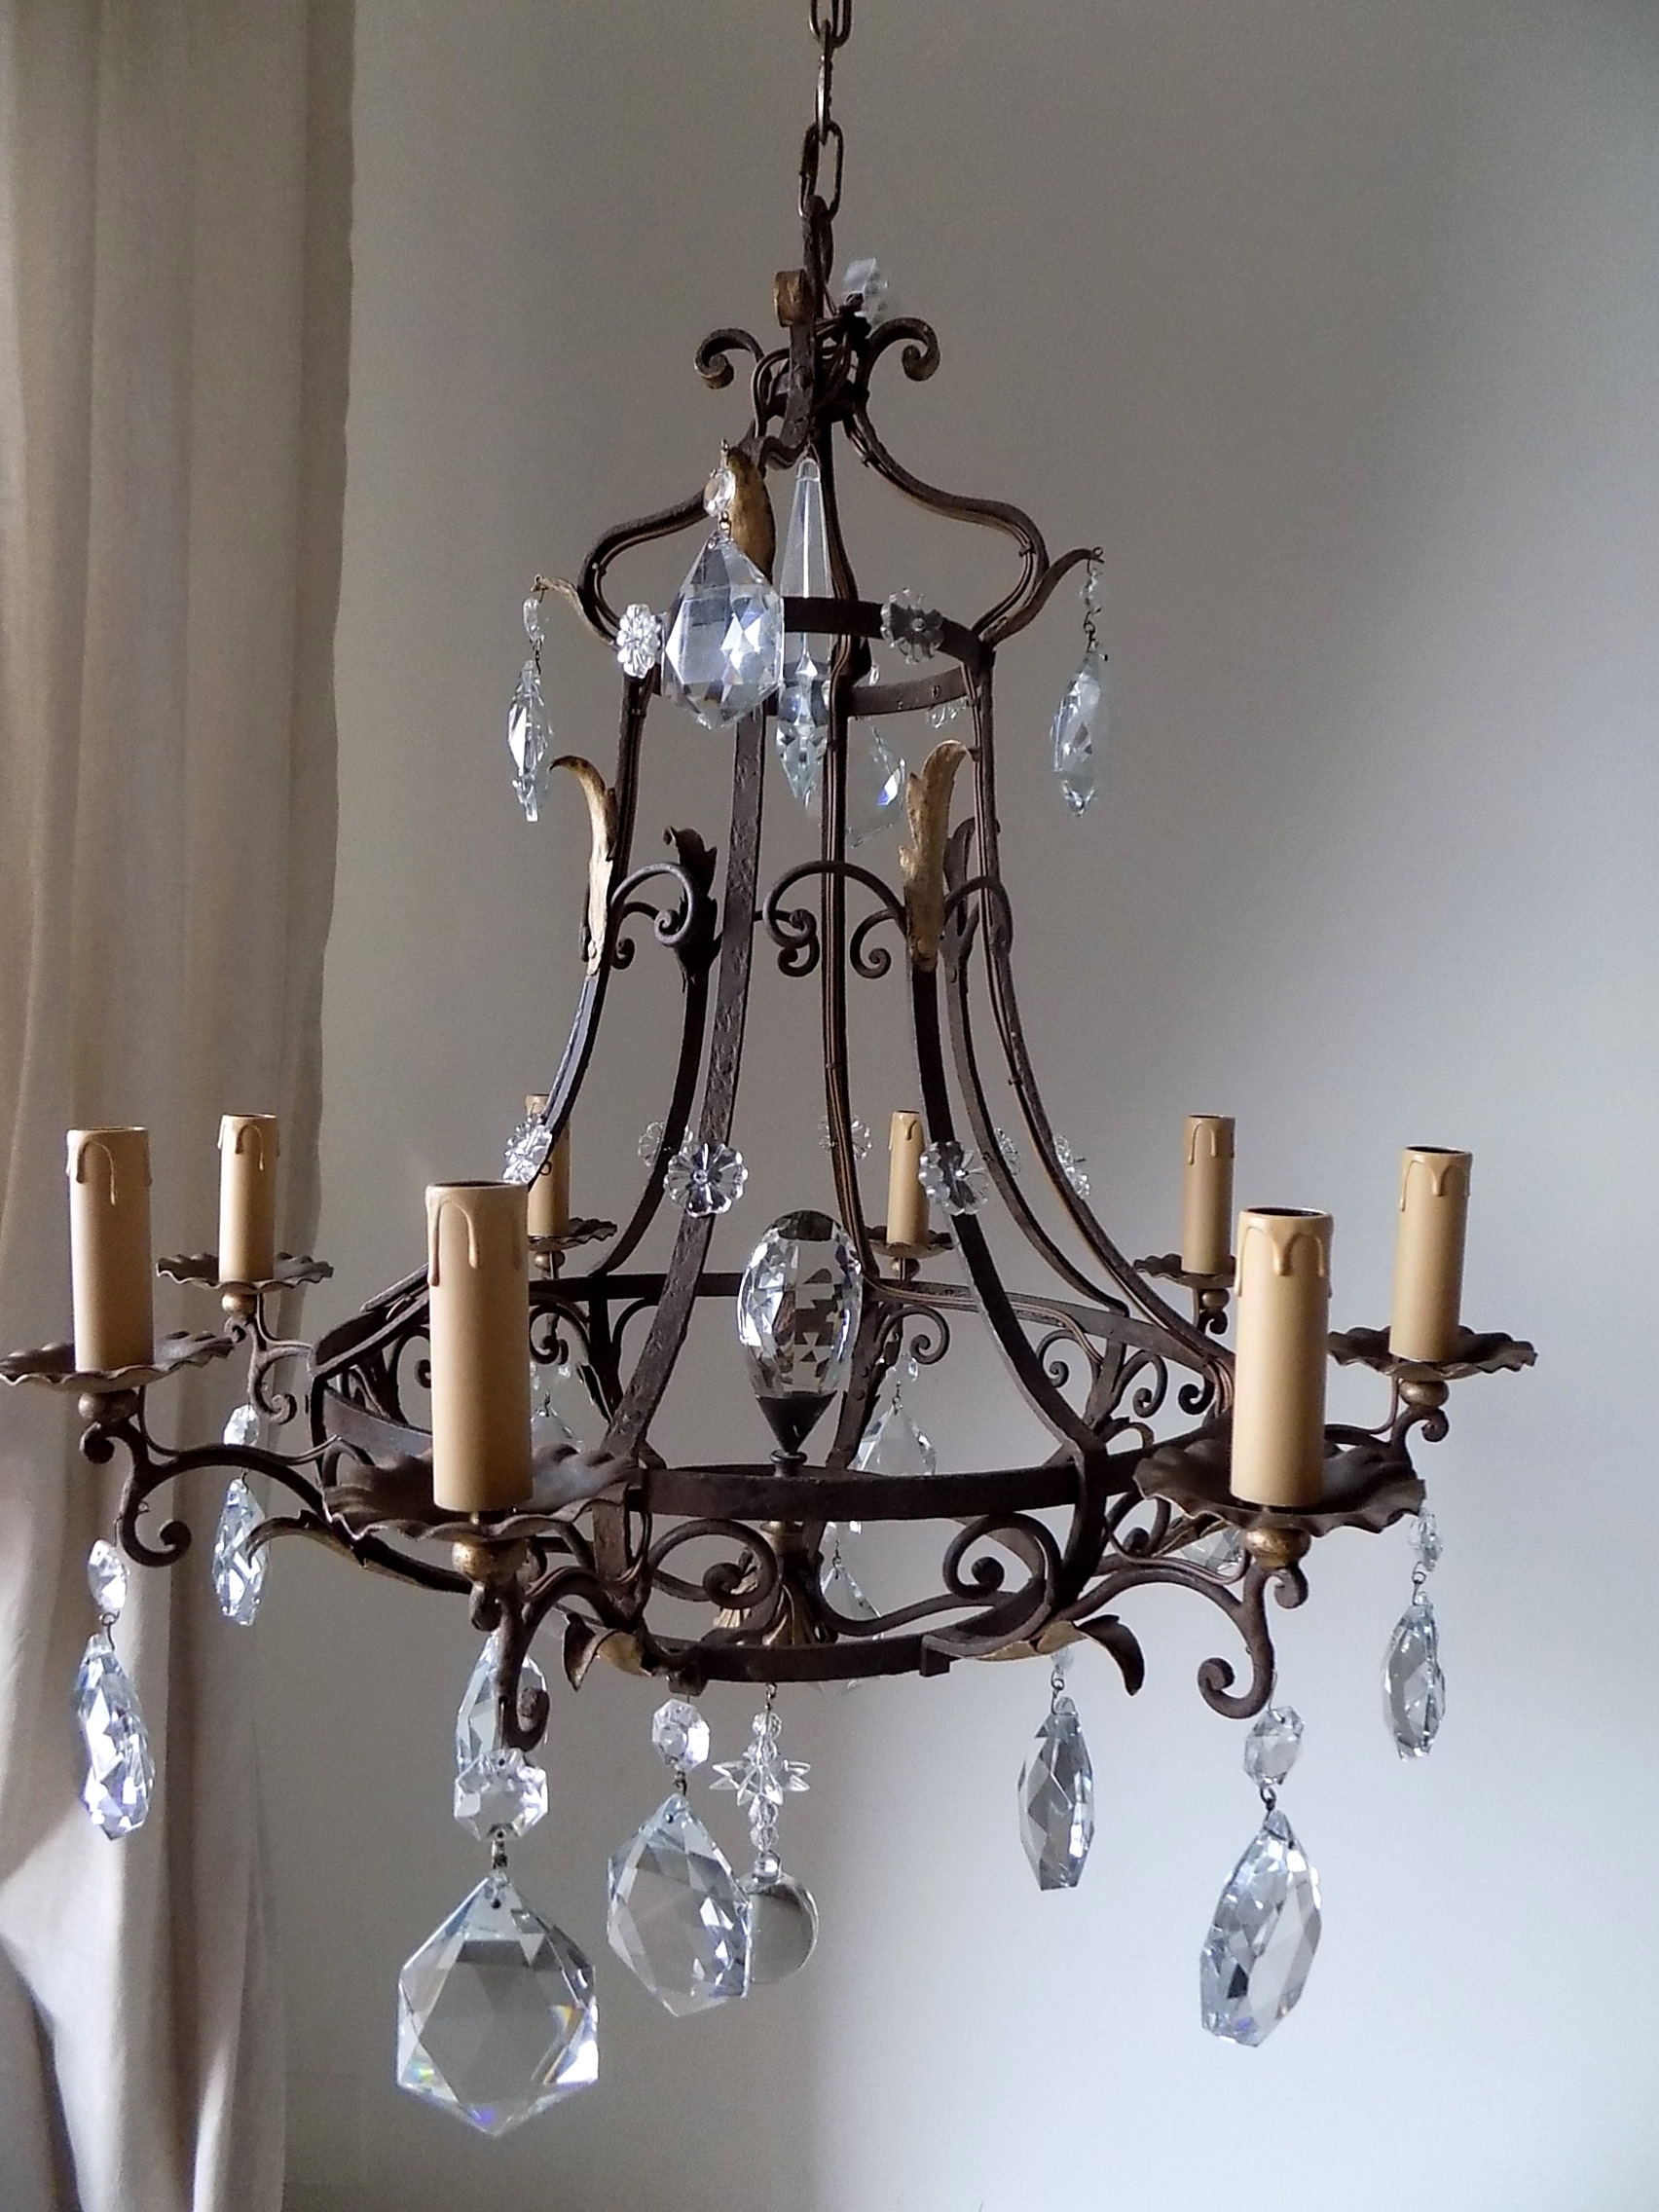 Best And Newest Antique French Iron Chandeliers – Dayri Within Antique French Chandeliers (View 7 of 20)